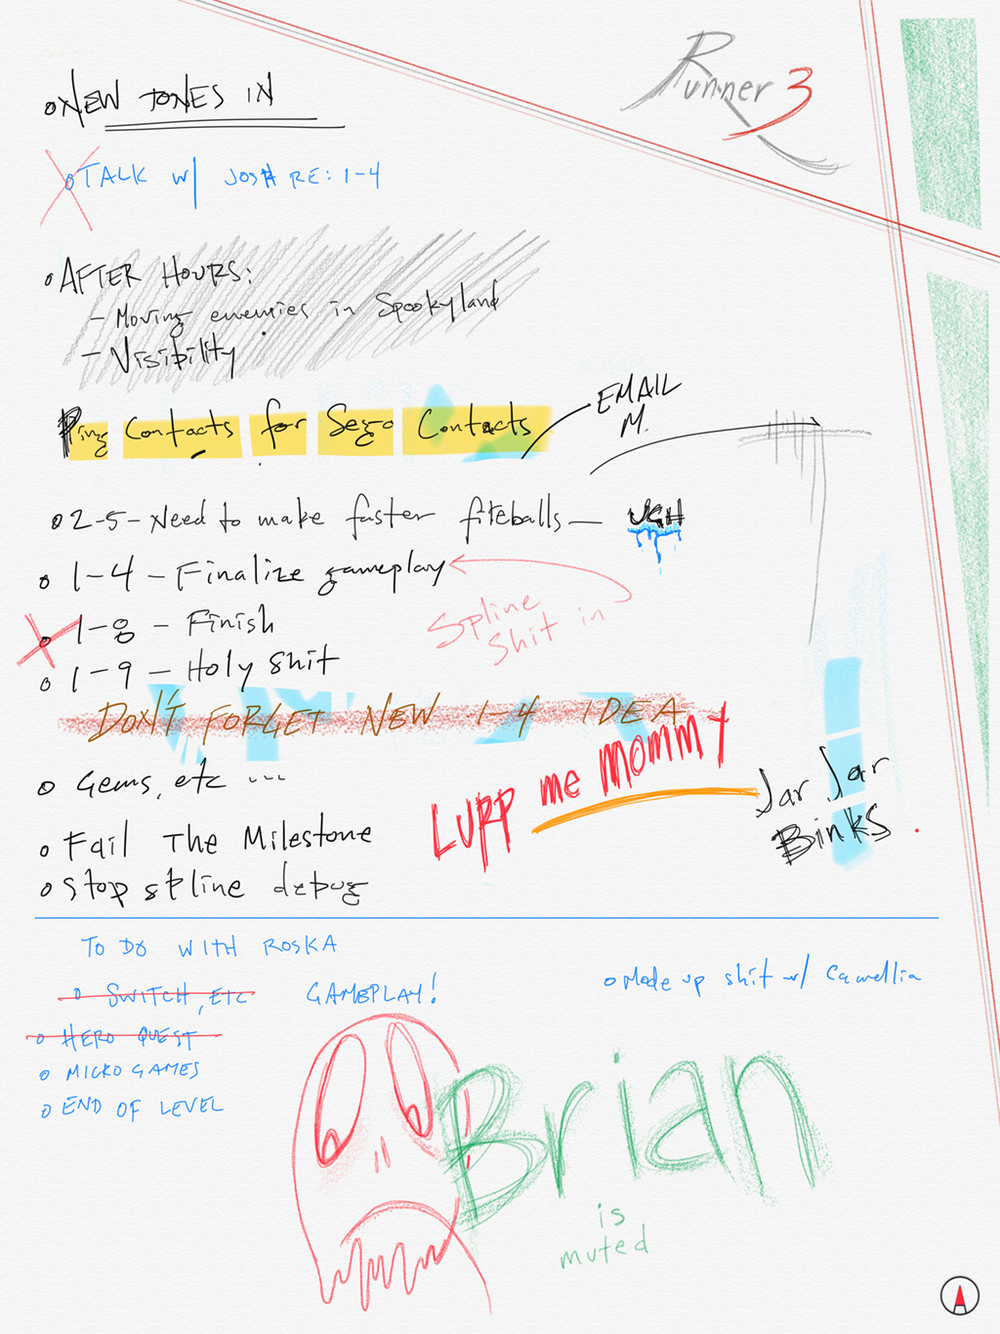 Runner3 - Daily Notes - 20170316.png